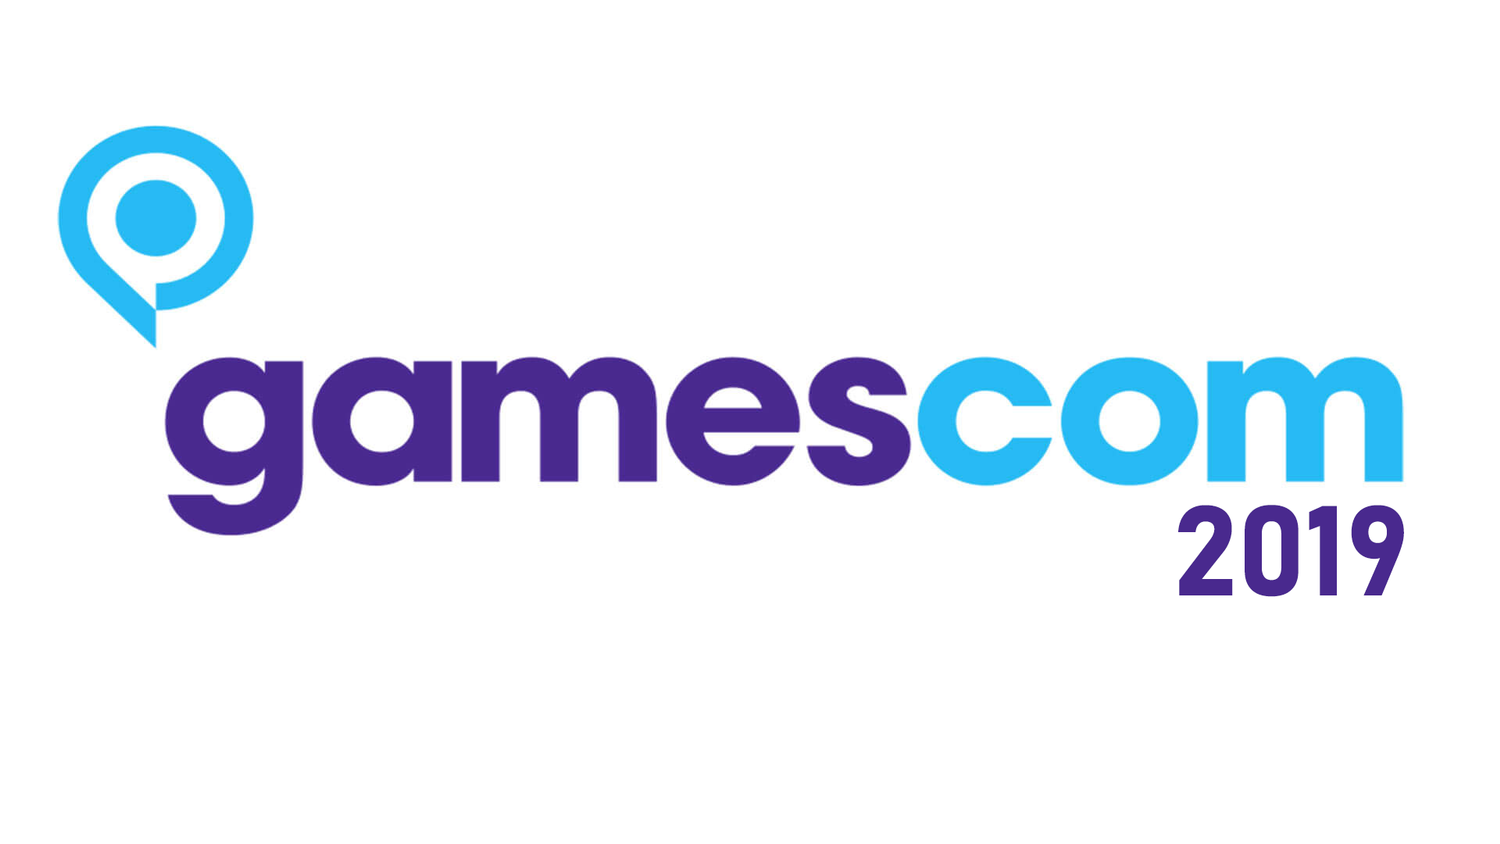 Gamescom 2019: Schedule, Dates, Times, Tickets, Games And